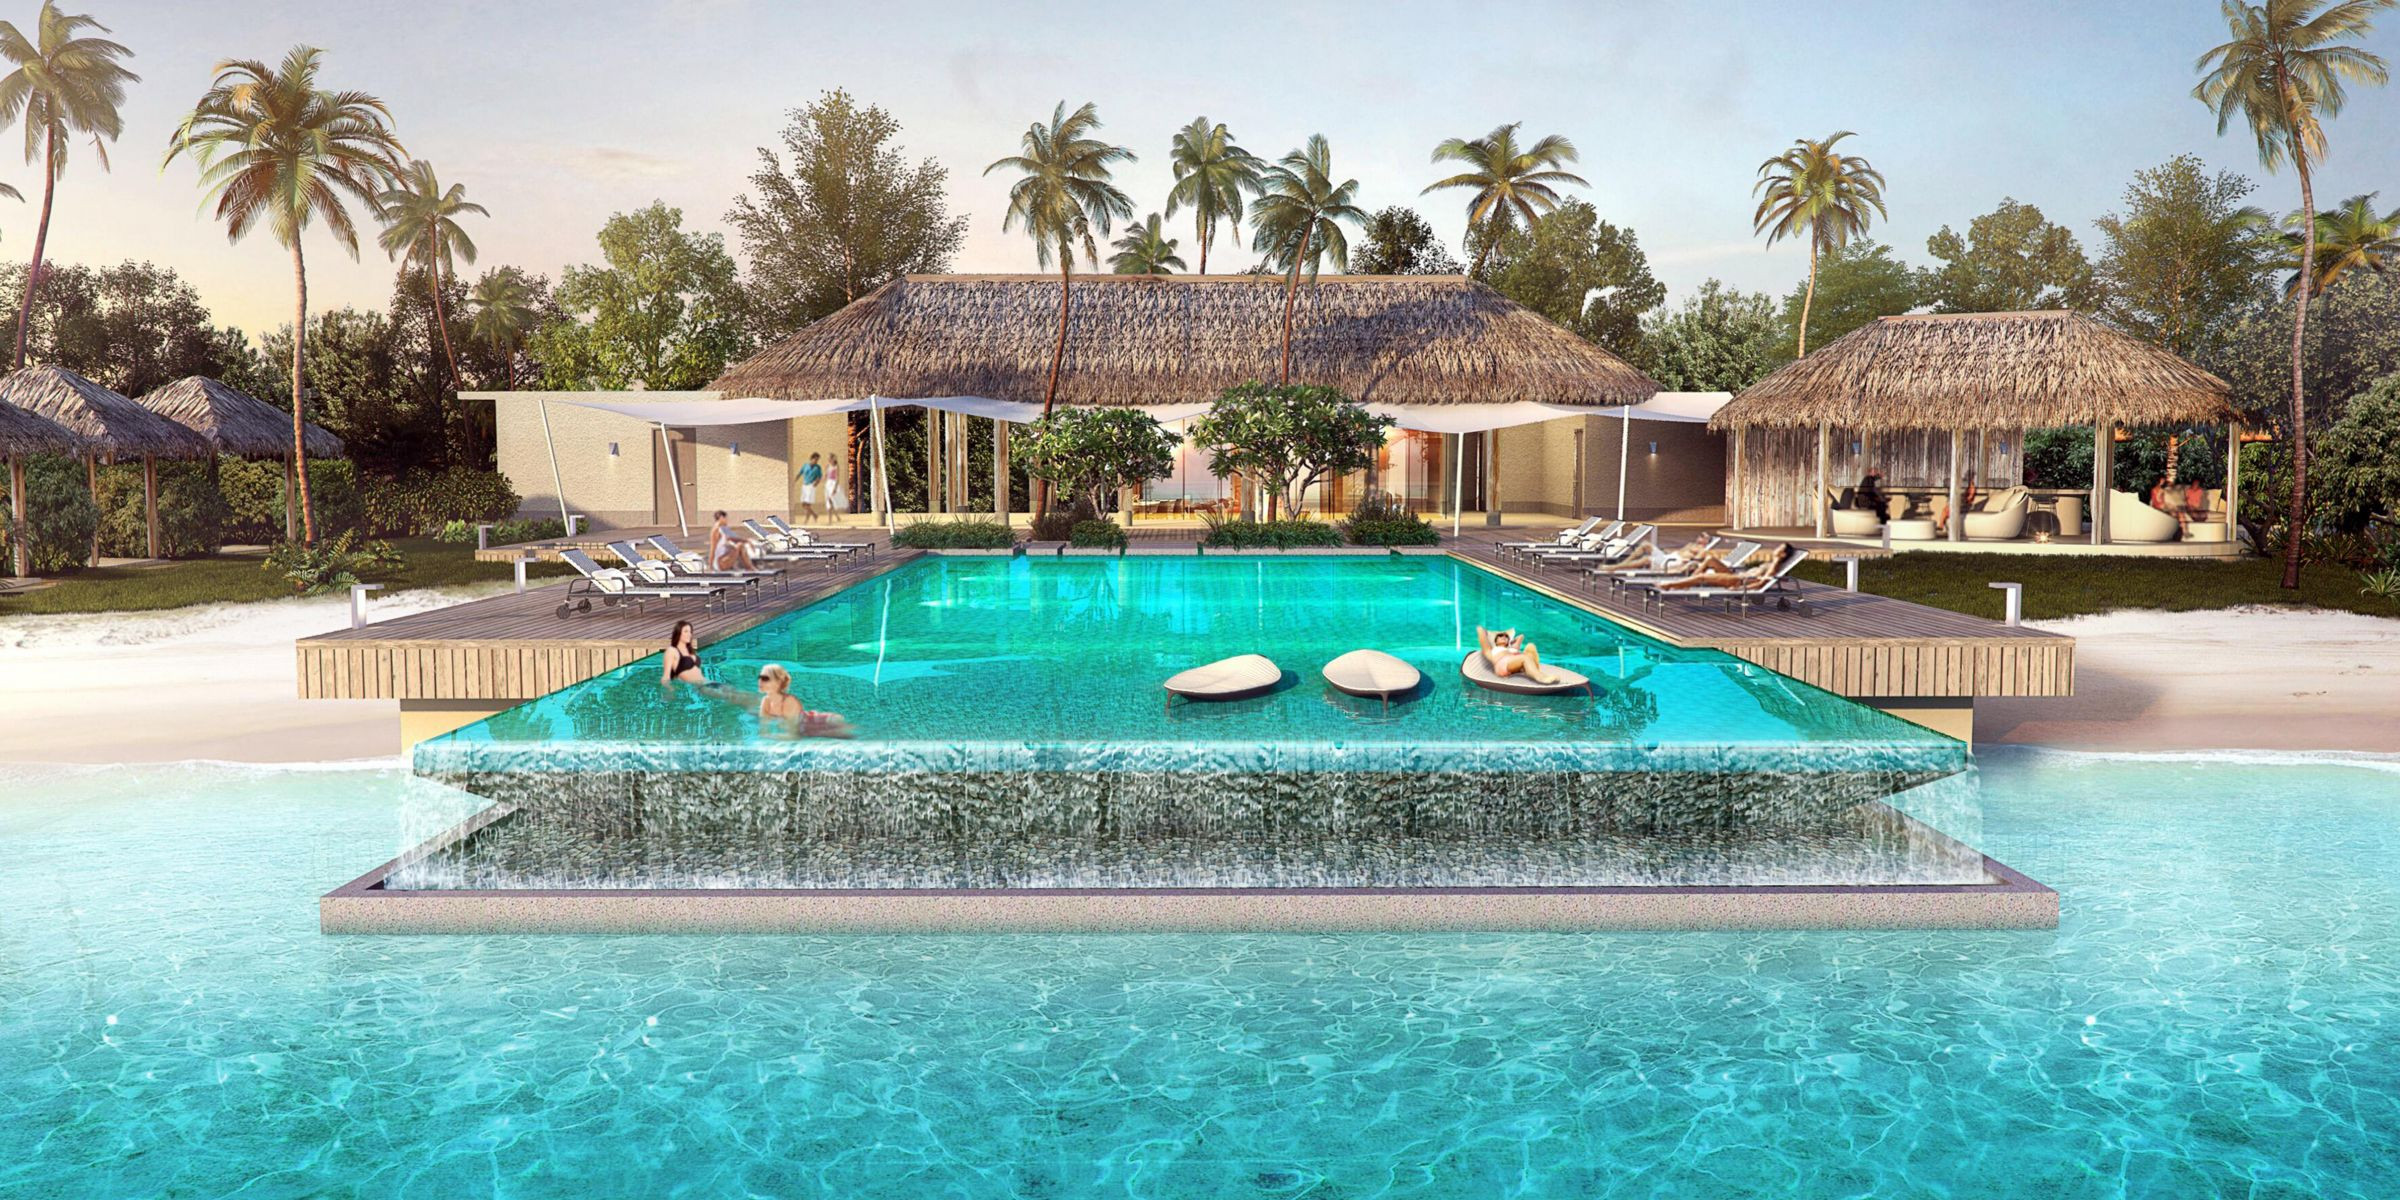 Asia Pacific's New Luxury Hotels in Maldives